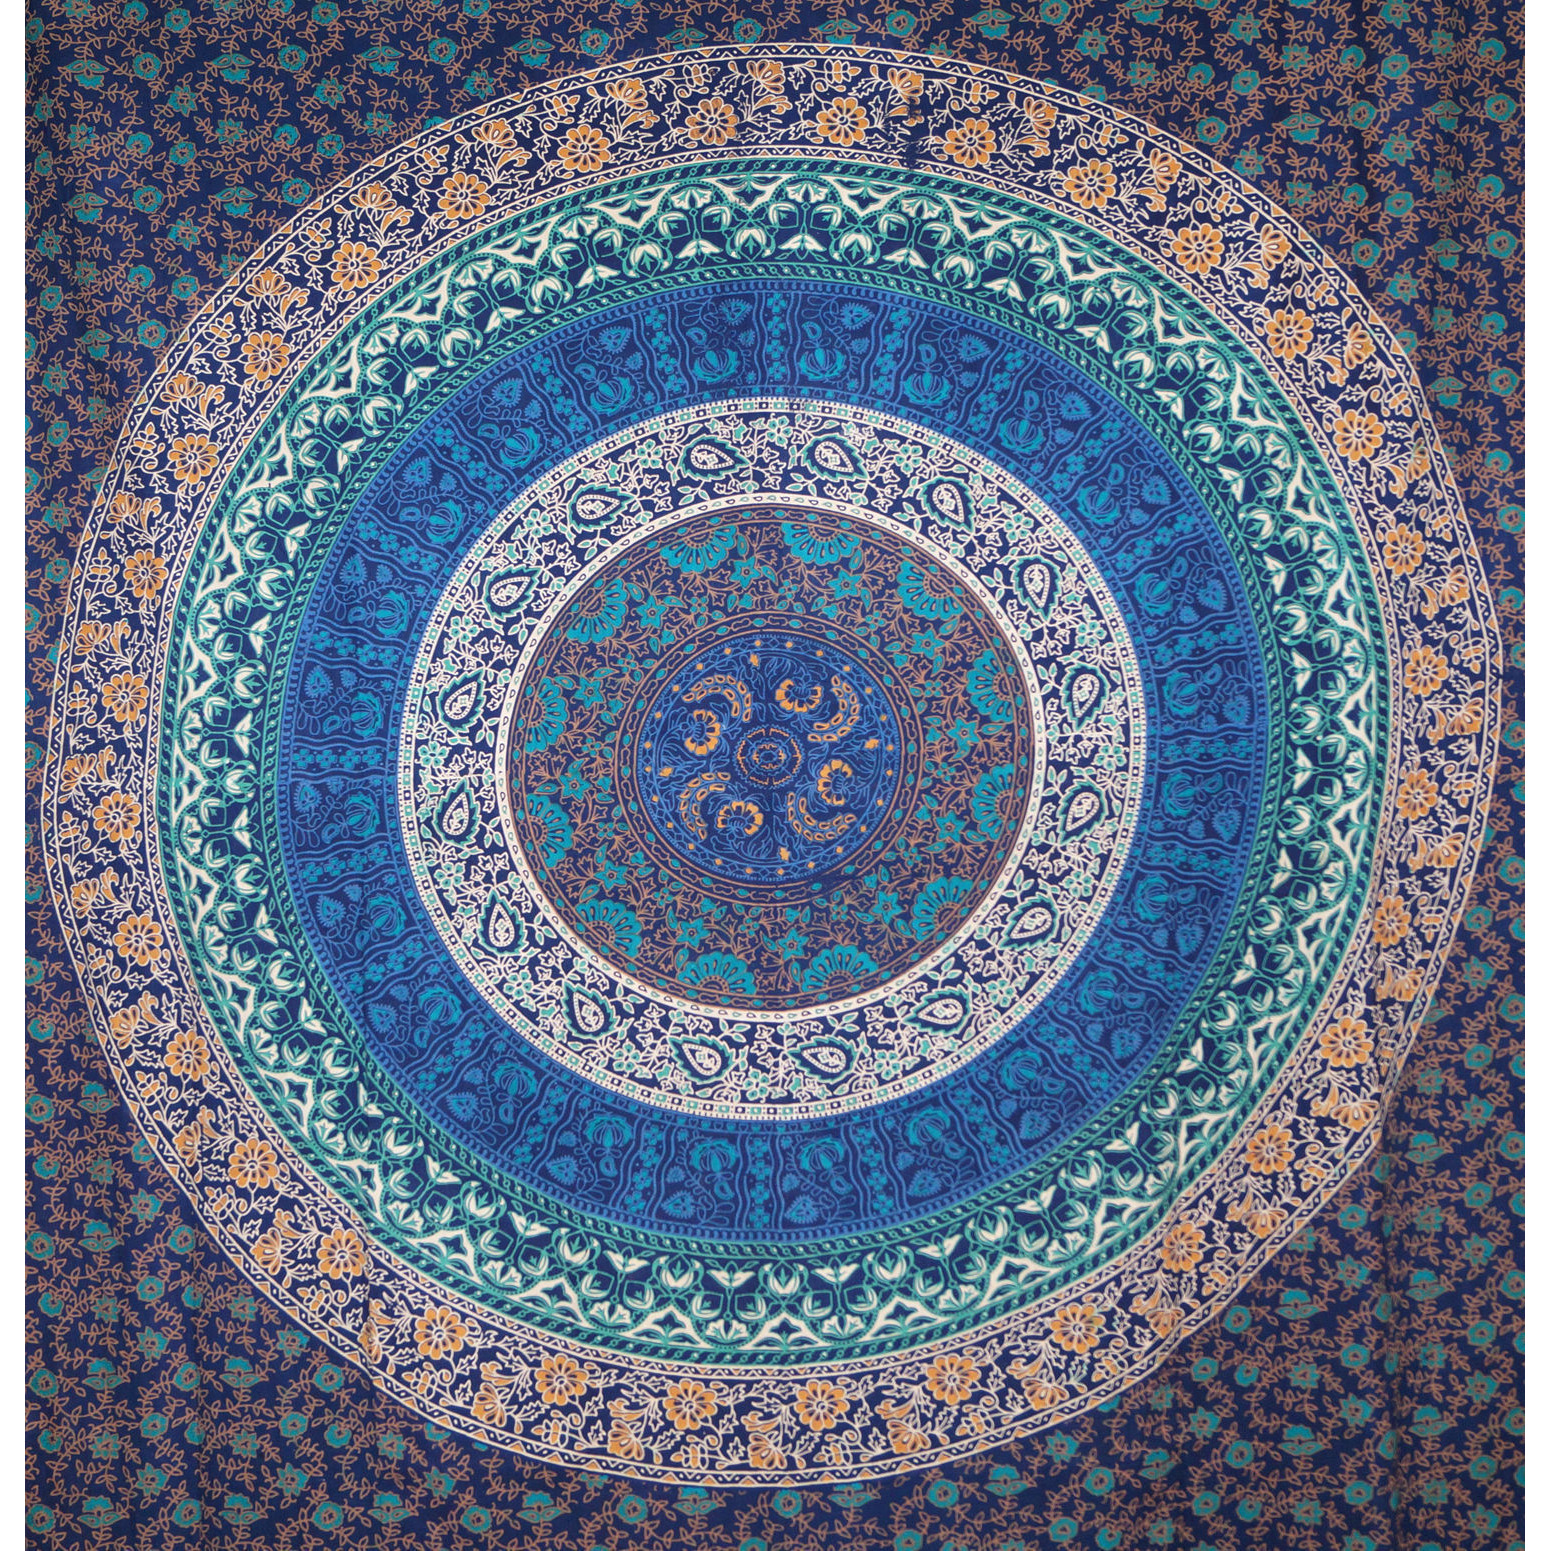 Indian Queen Mandala Tapestry Hippie Wall Hanging Throw Bohemian Bedspread Decor